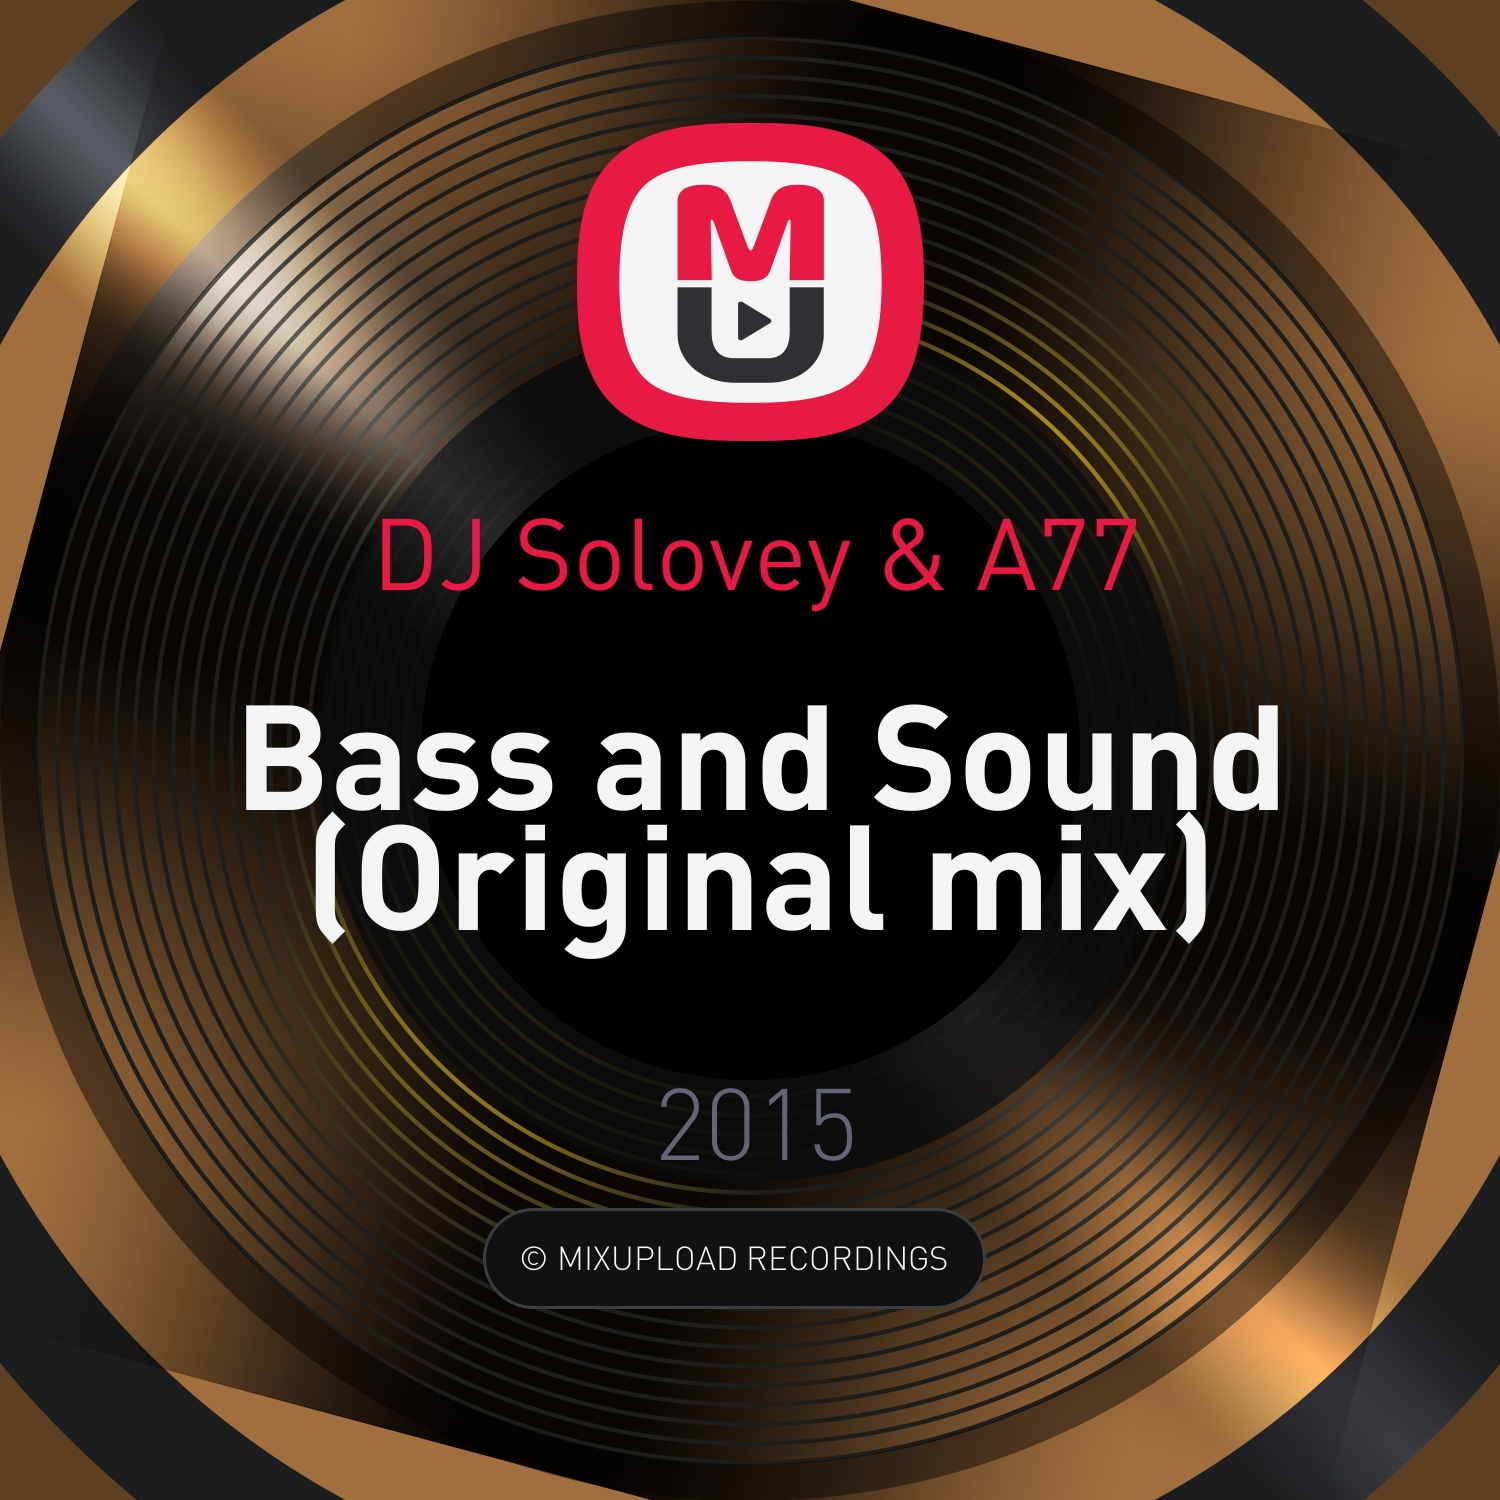 DJ Solovey & A77 - Bass and Sound (Original mix)